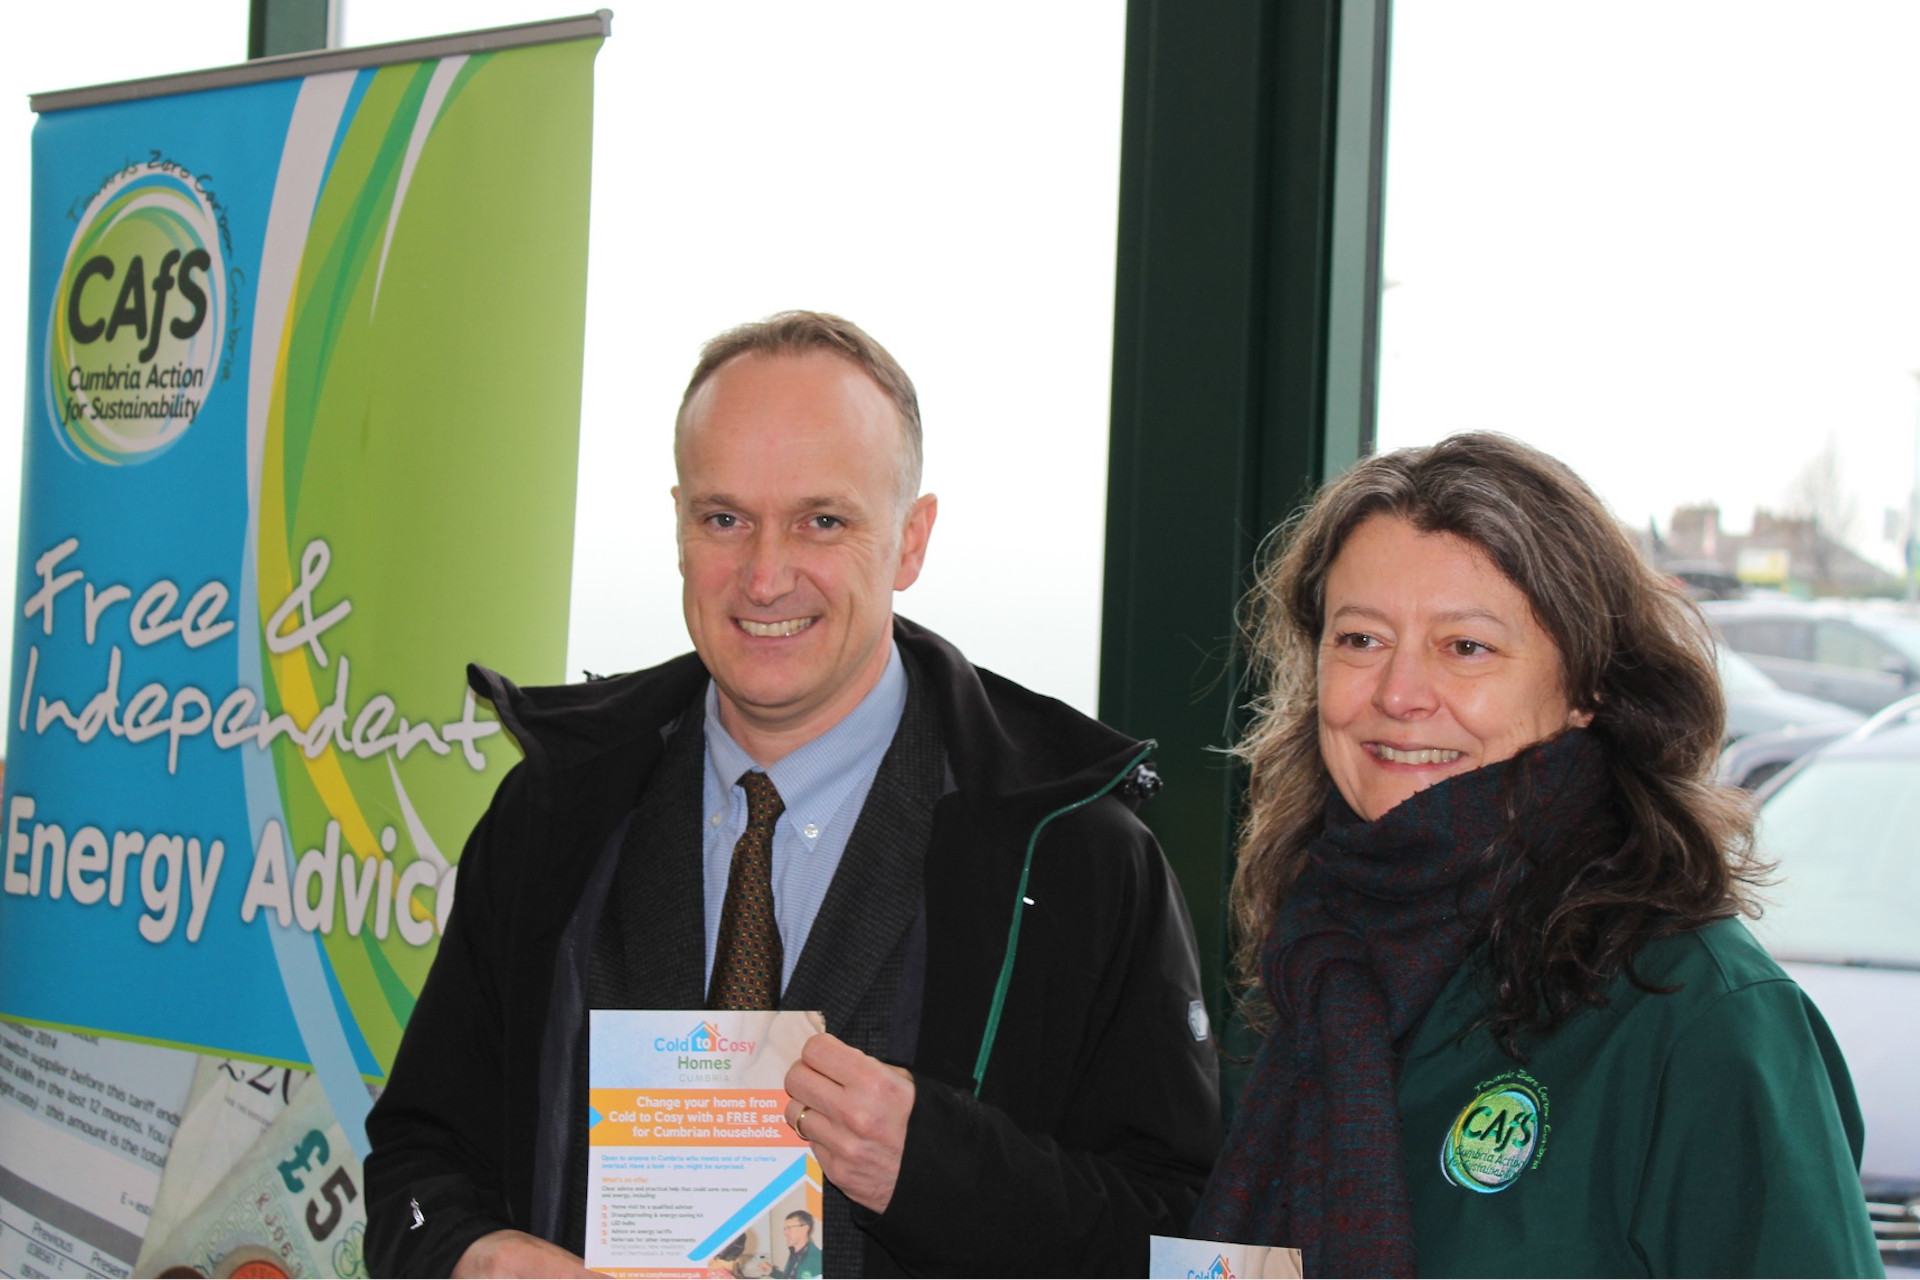 Neil Hudson MP with Karen Mitchell